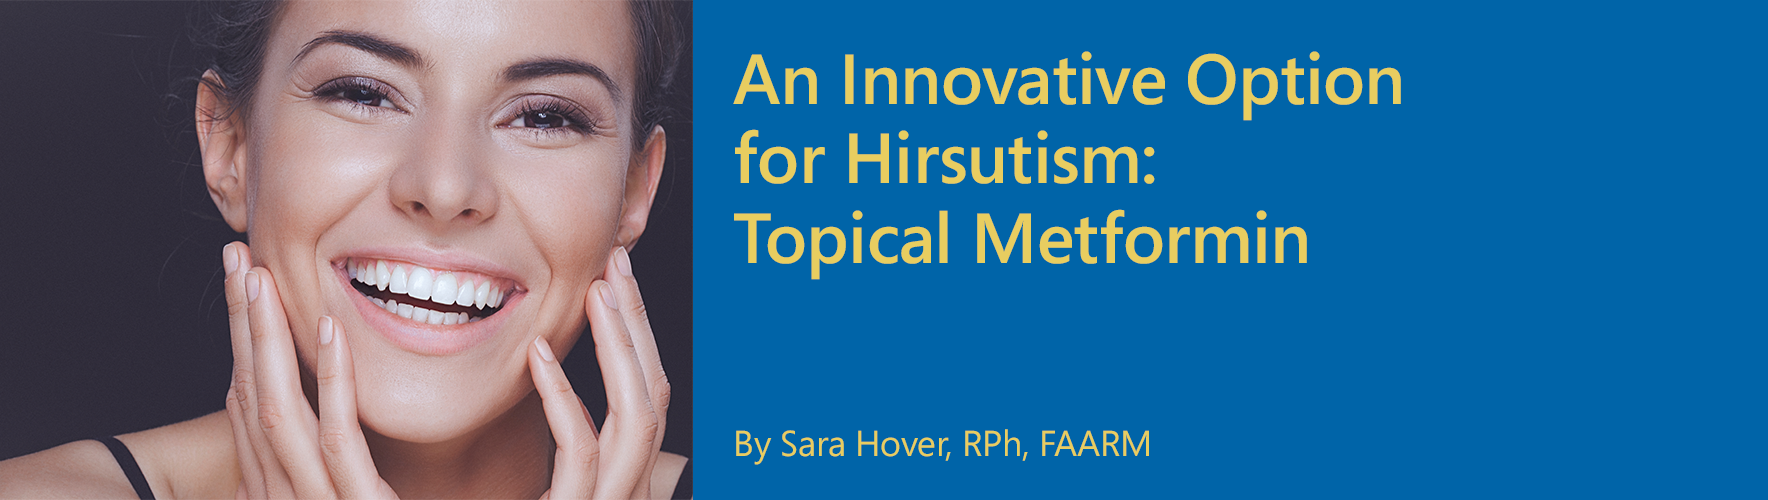 THE PCCA BLOG | An Innovative Option for Hirsutism: Topical